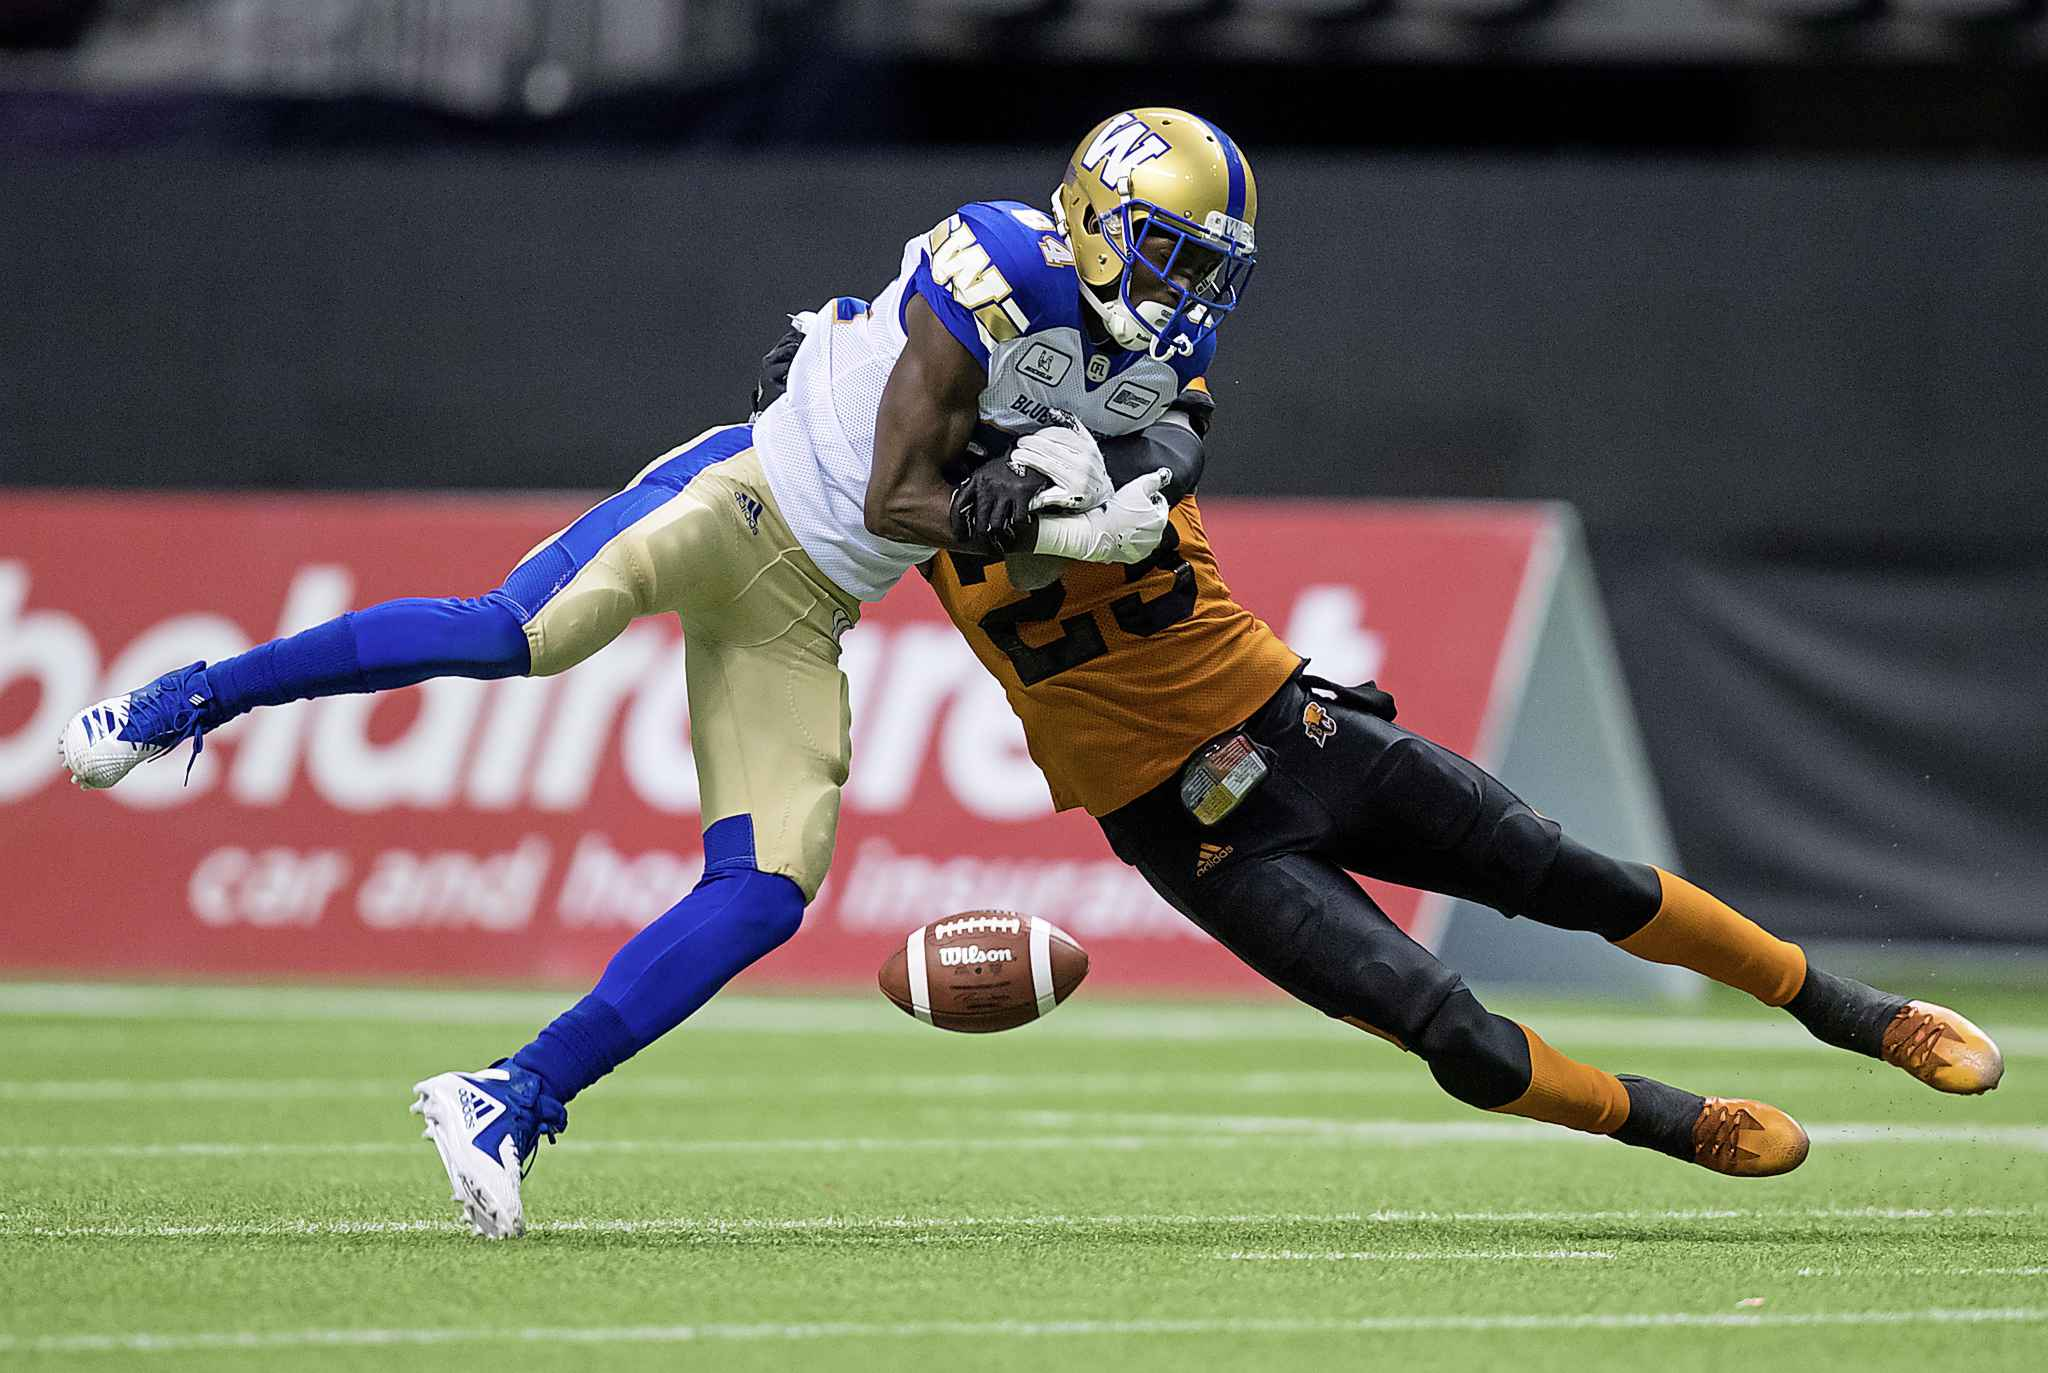 B.C. Lions' Anthony Thompson, right, breaks up a pass intended for Winnipeg Blue Bombers' Ryan Lankford during the first half of a pre-season CFL football game in Vancouver, on Friday June 8, 2018. THE CANADIAN PRESS/Darryl Dyck